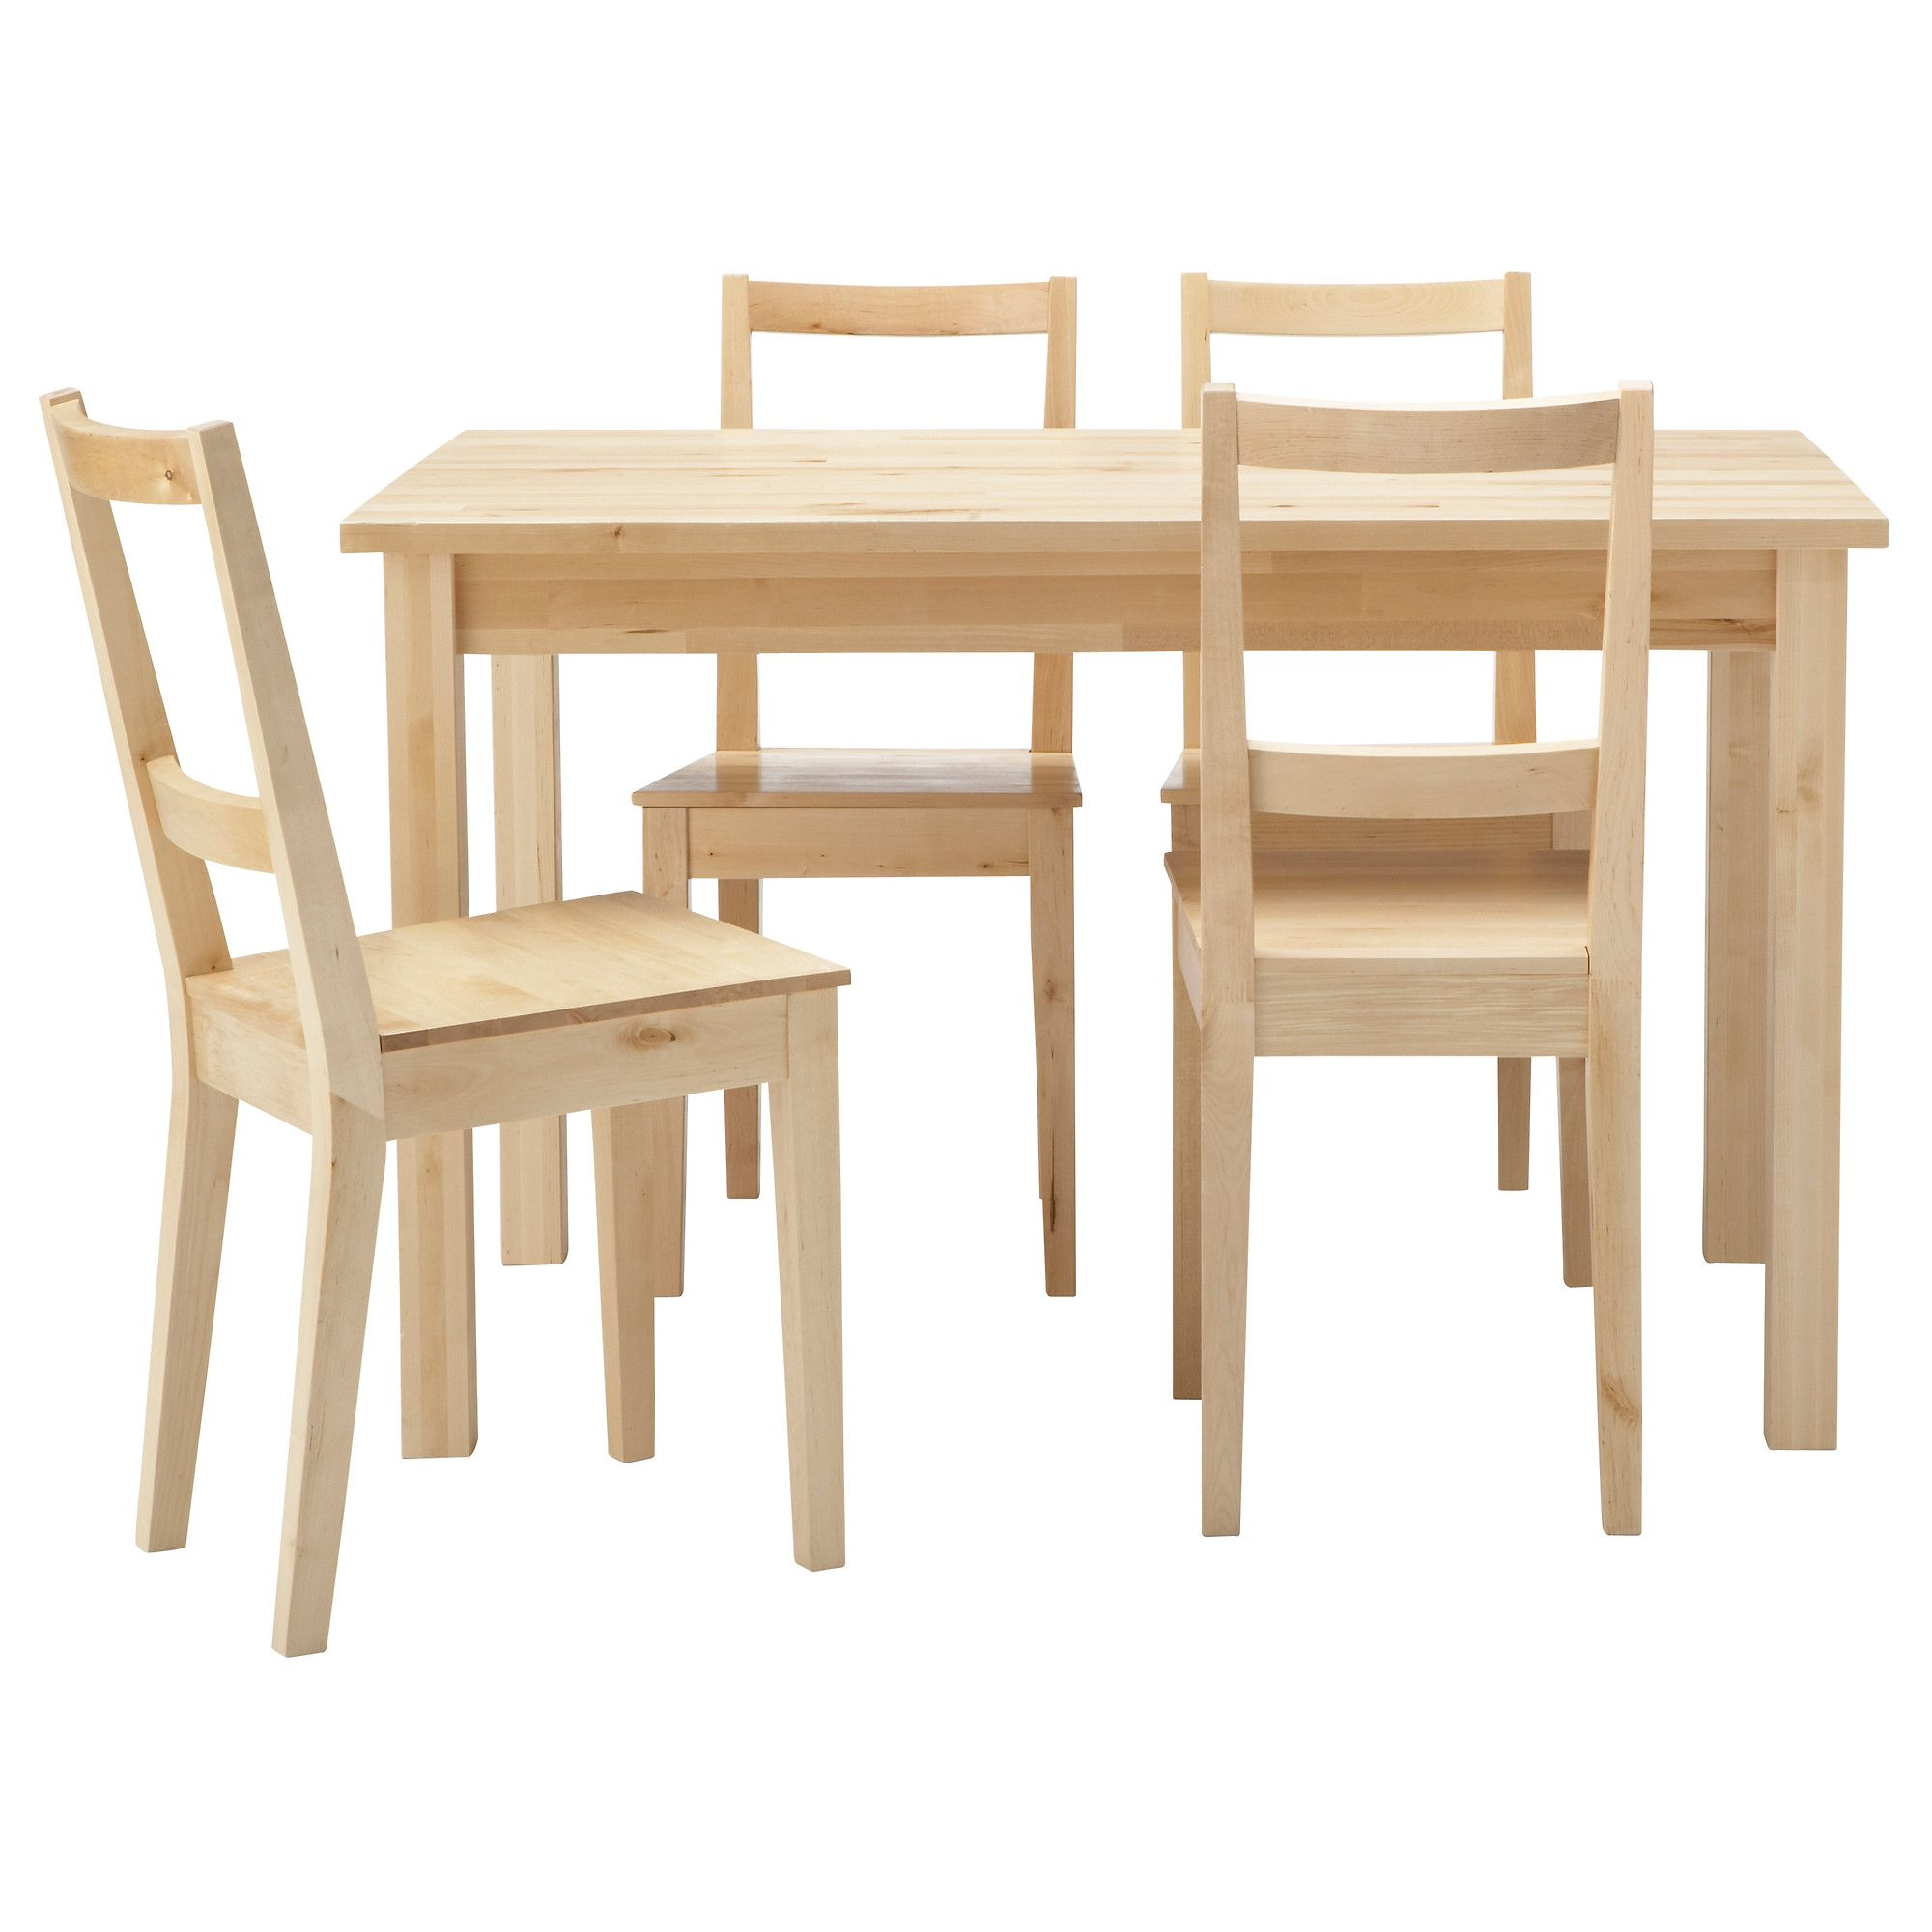 Dining room furniture appealing ikea dining sets with dining table and chairs furniture - Wooden dining room chairs ...